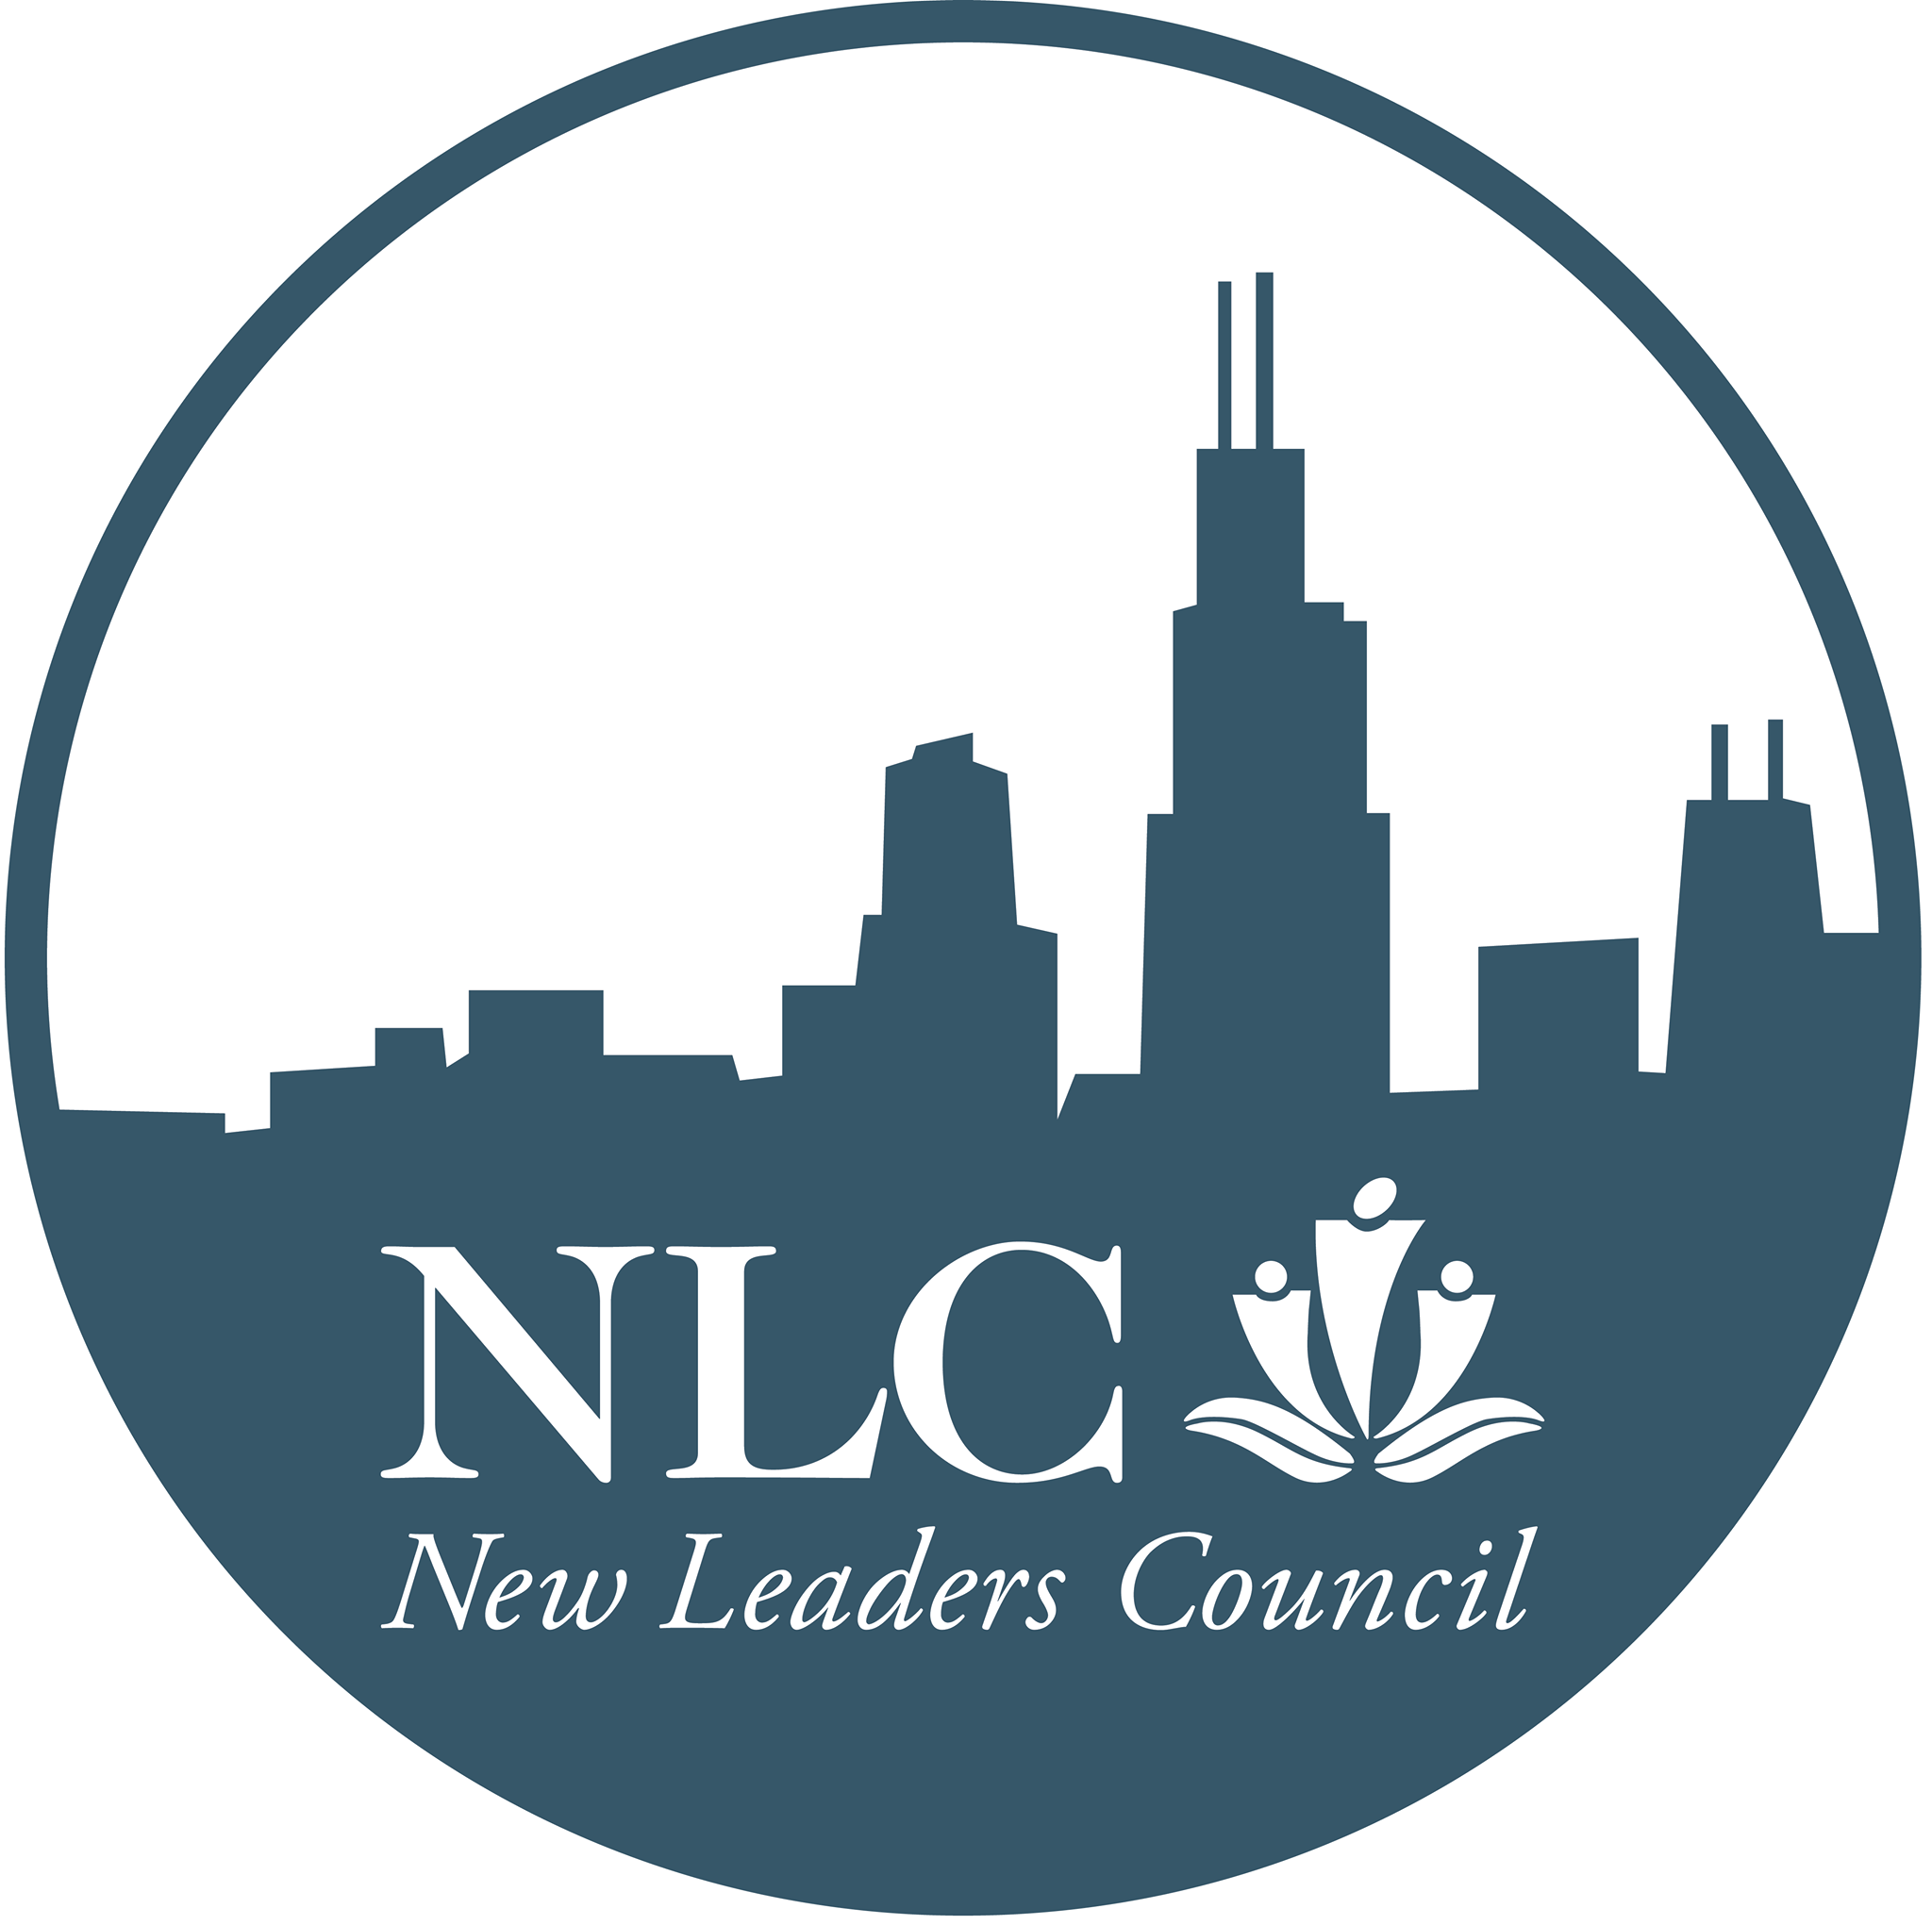 NLC_Chicago_logo.png